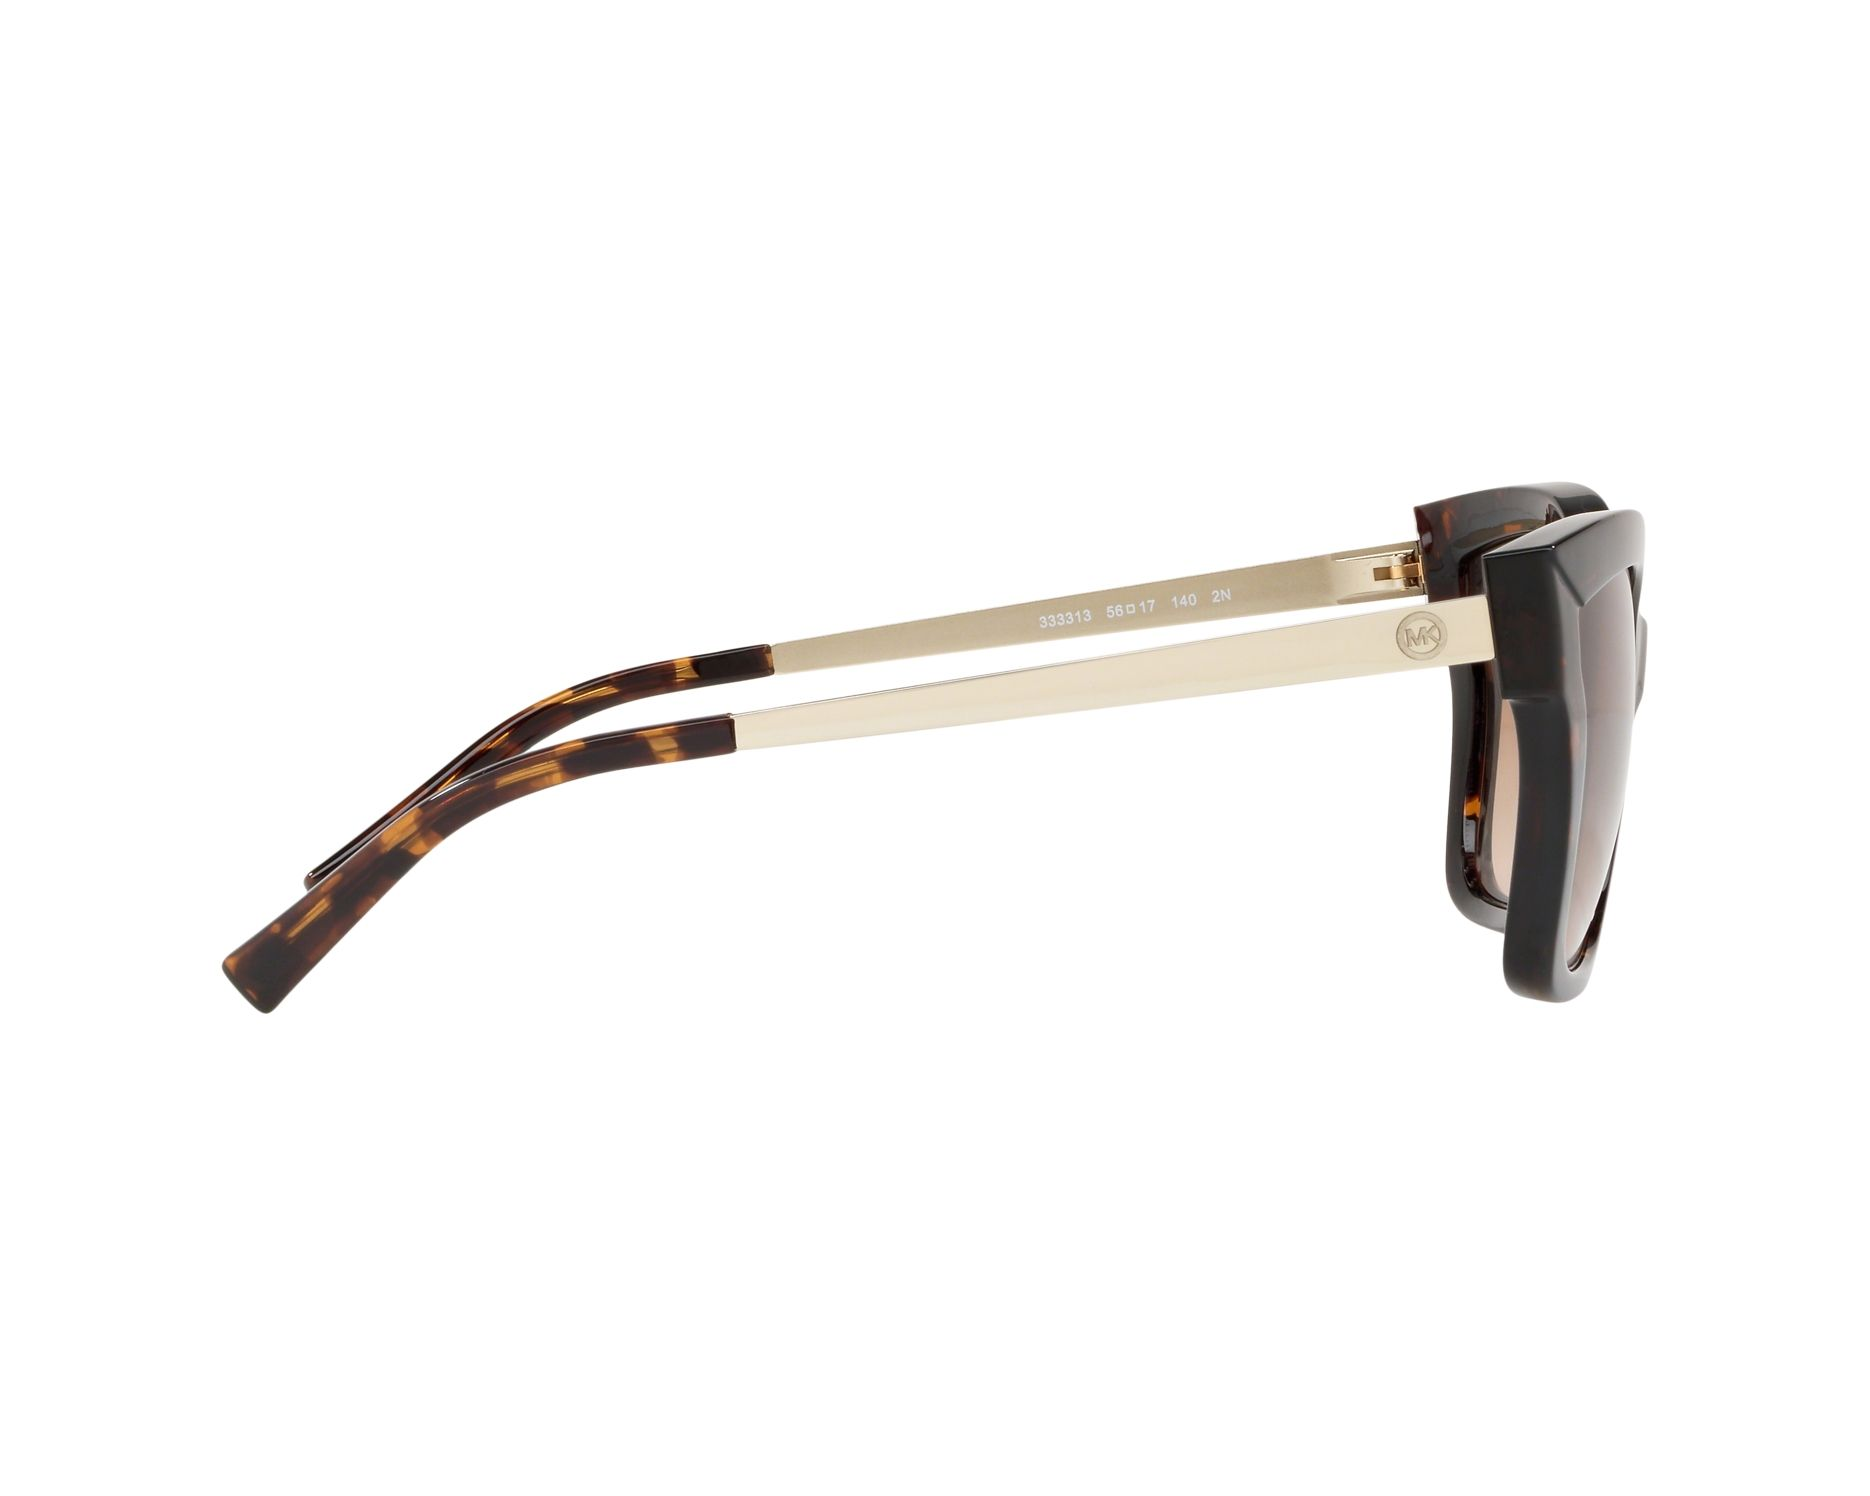 178e17d5e1 Sunglasses Michael Kors MK-2072 333313 56-17 Havana Gold 360 degree view 10